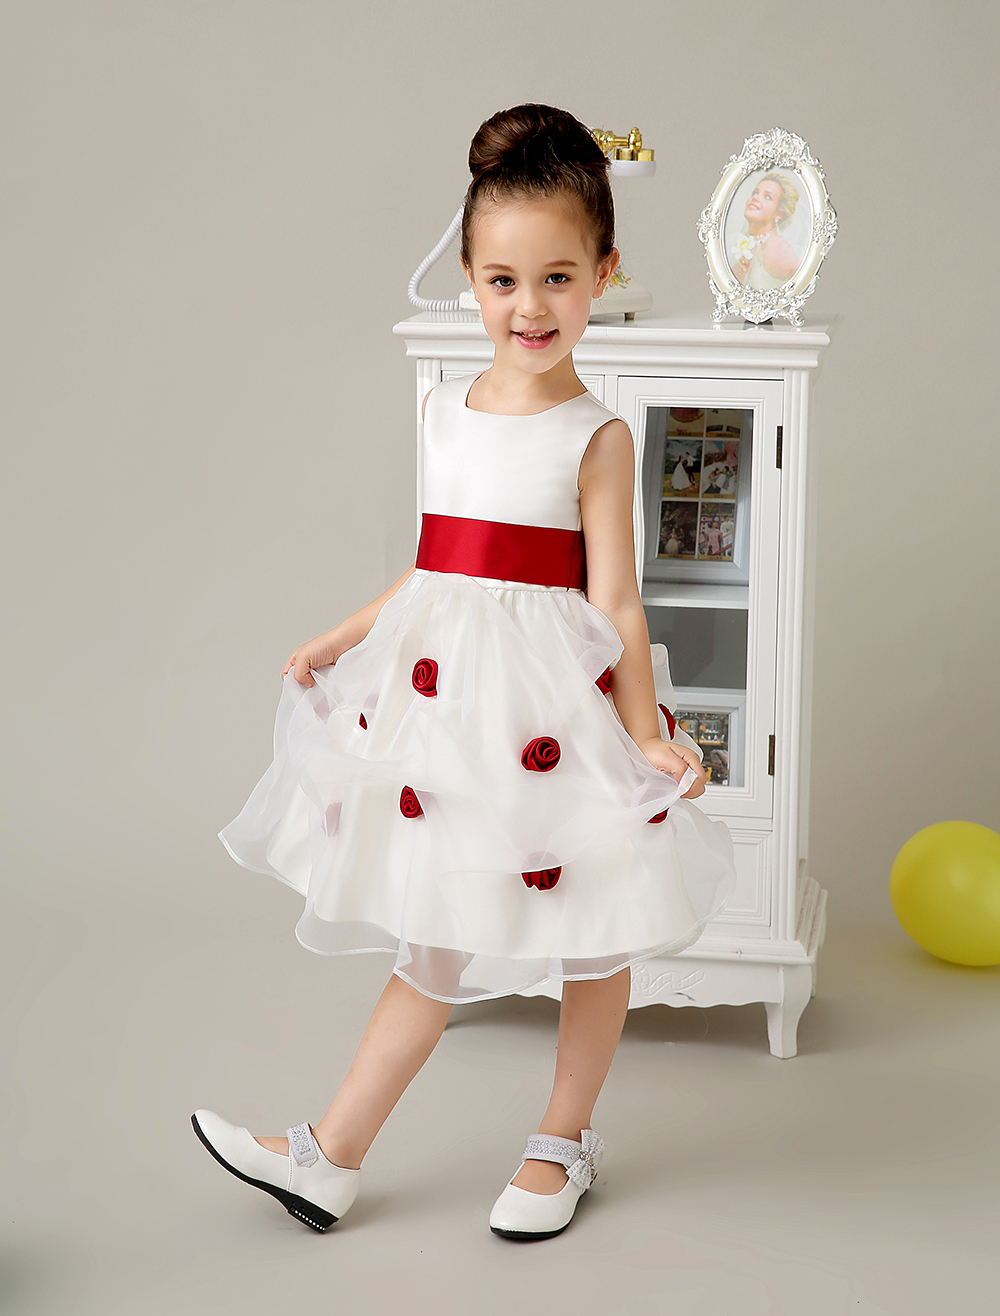 Satin and Tulle A-line little Girl Dresses with red sash wedding flower girls dresses formal dress little girls pageant Dresses(China (Mainland))